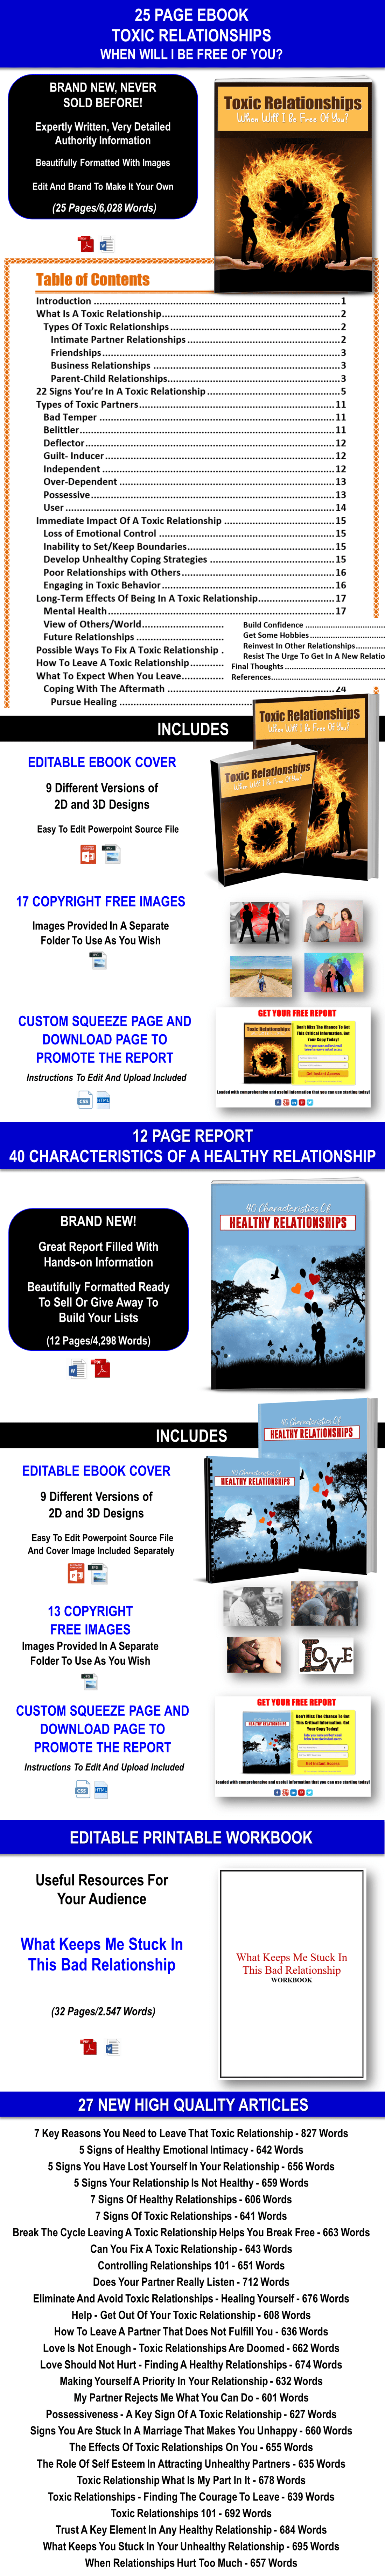 Giant Toxic Relationships Content Pack with Private Label Rights